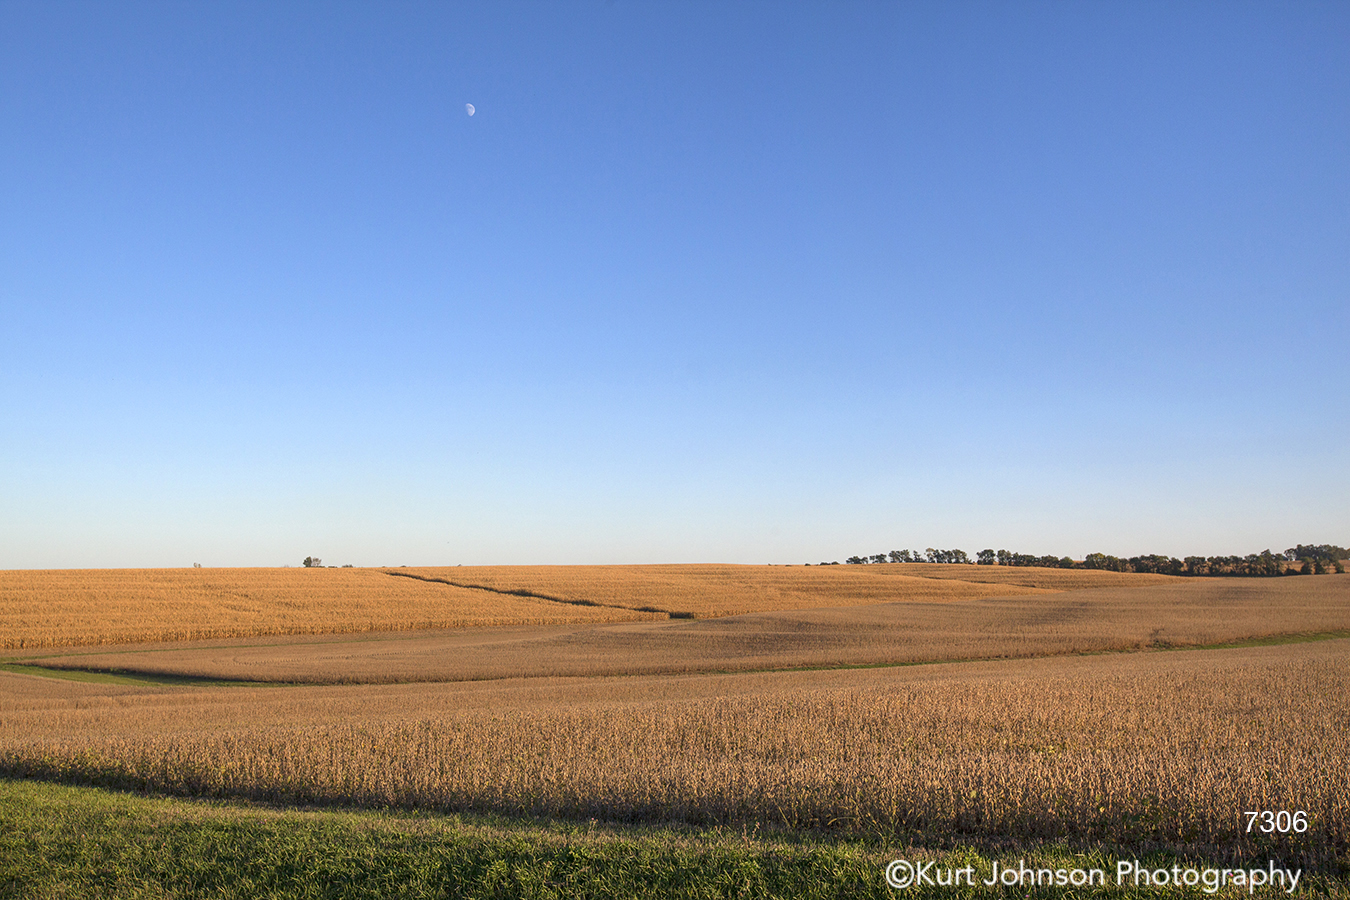 midwest farm field hills country landscape blue sky